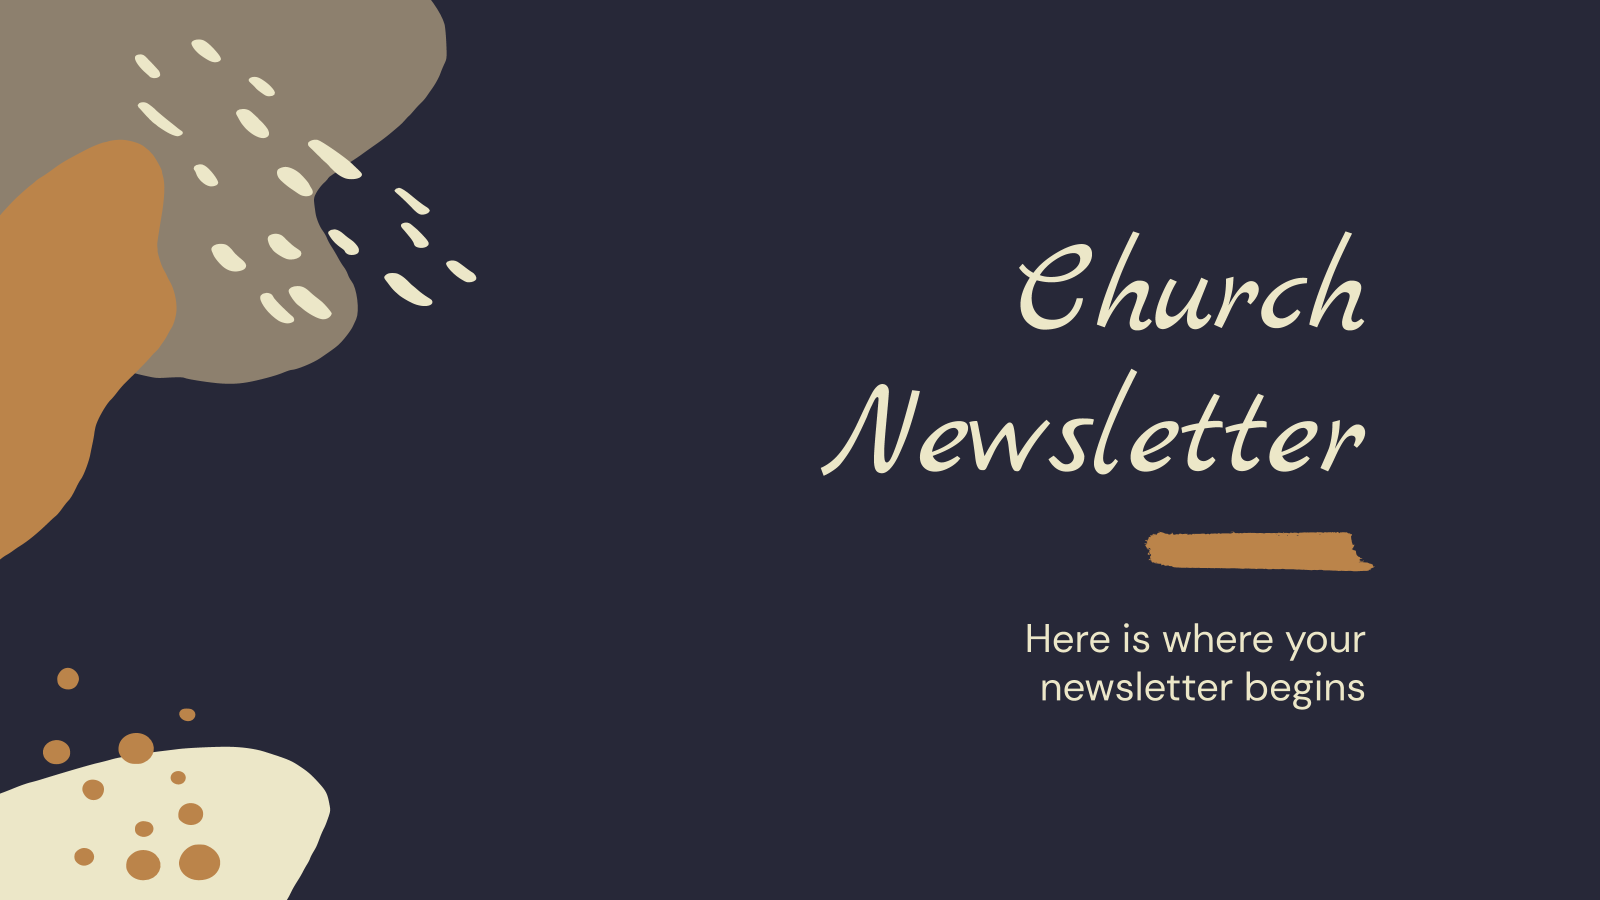 Church Newsletter presentation template